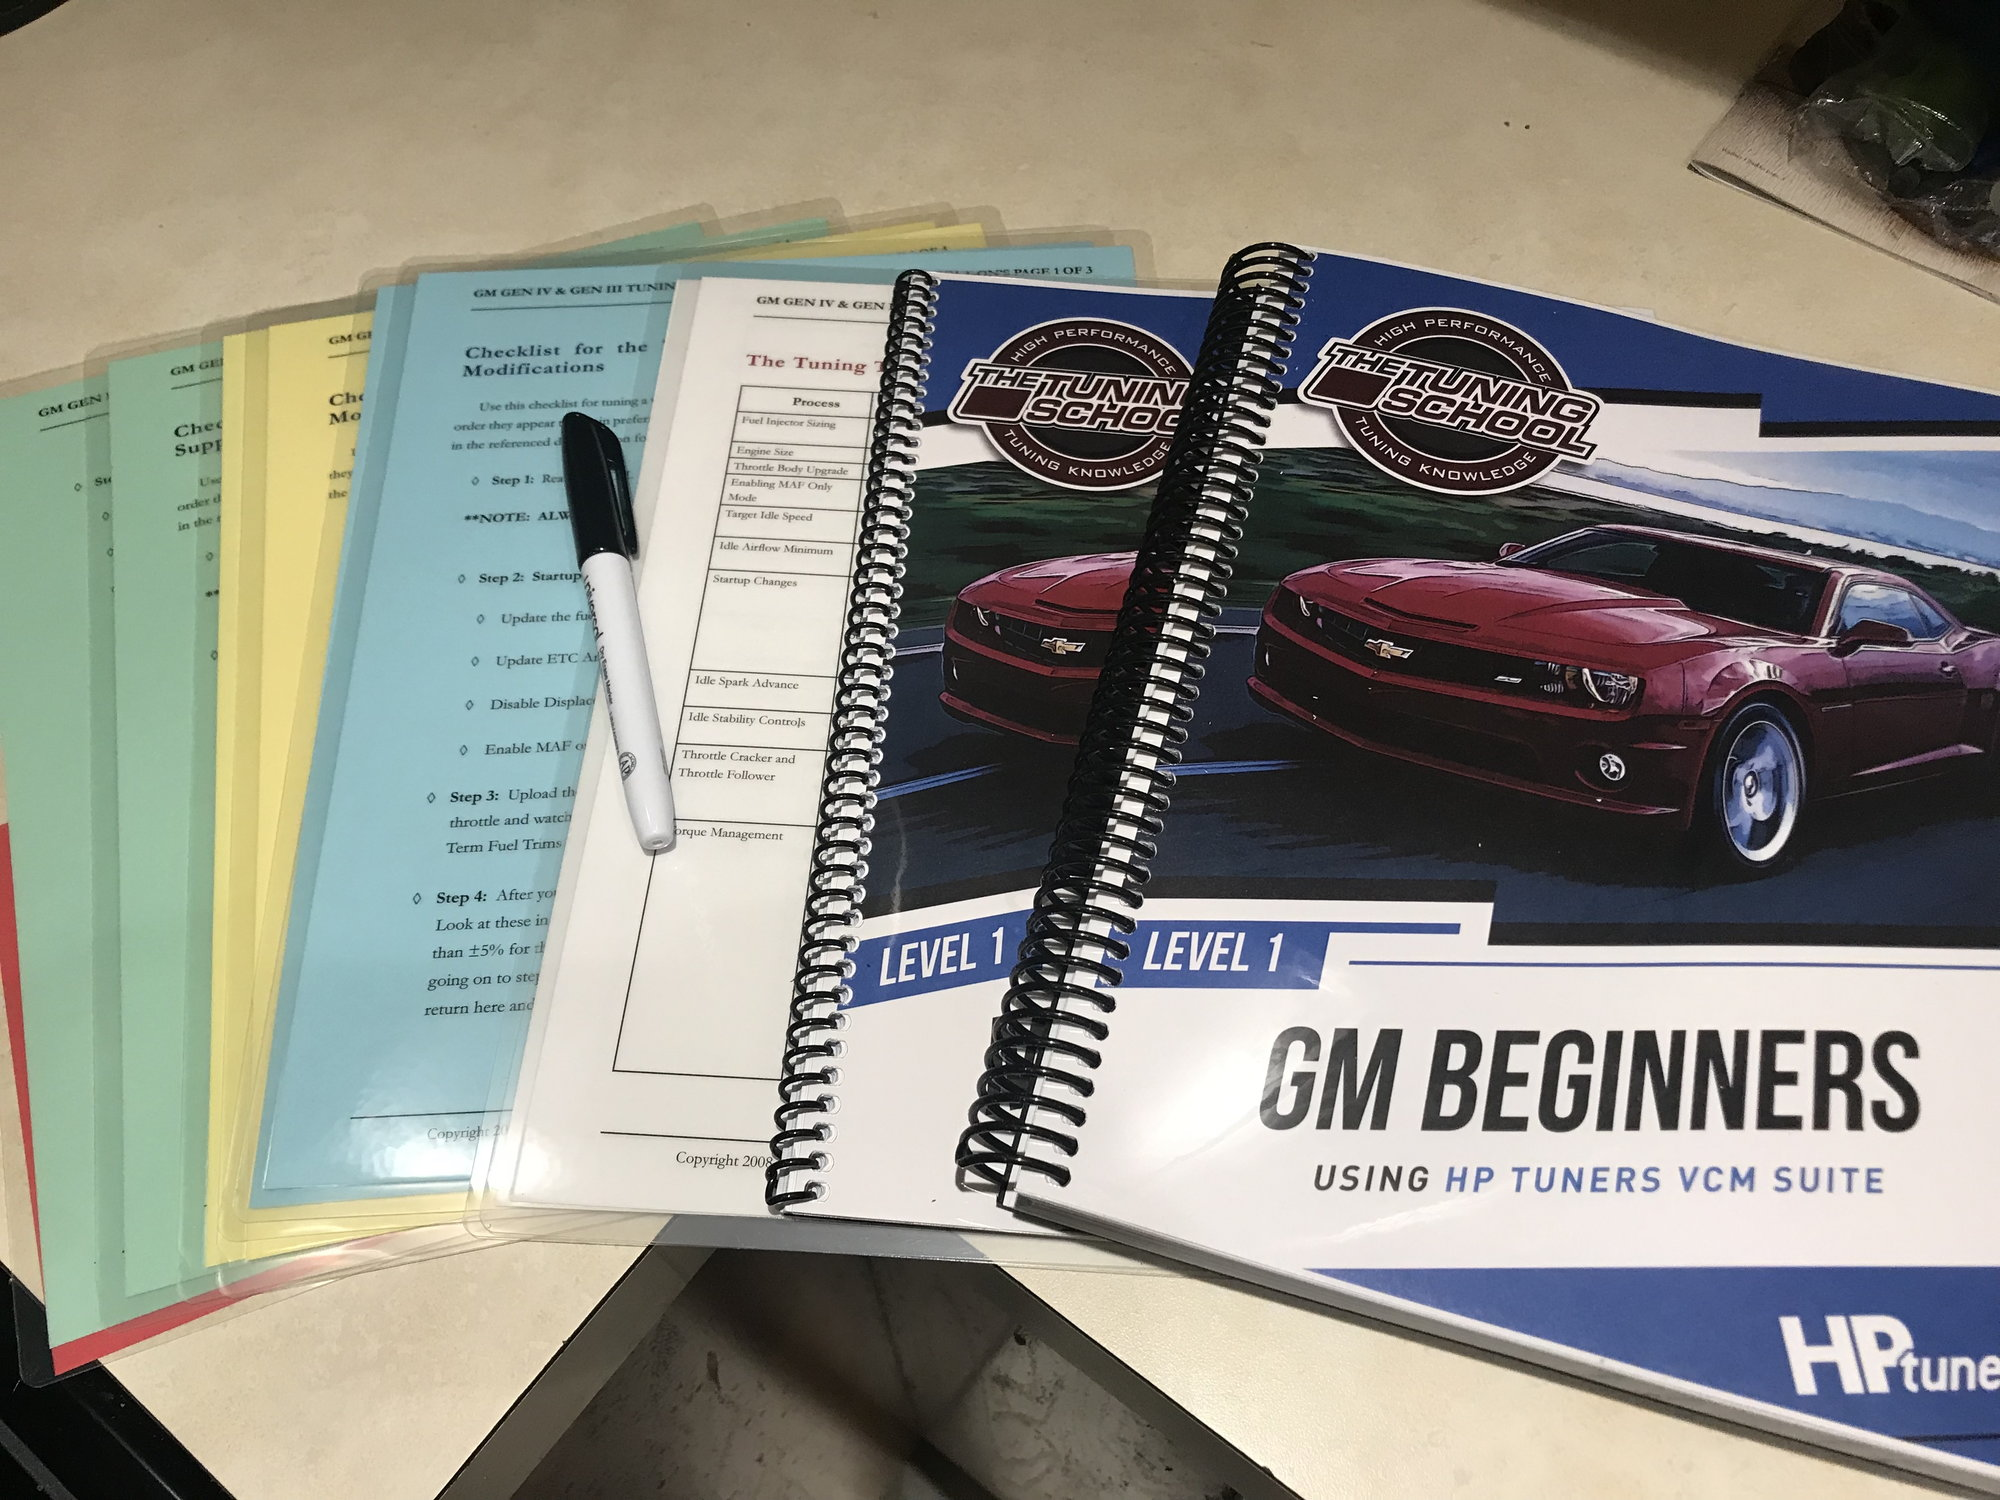 FS (For Sale) Tuning School books - CorvetteForum